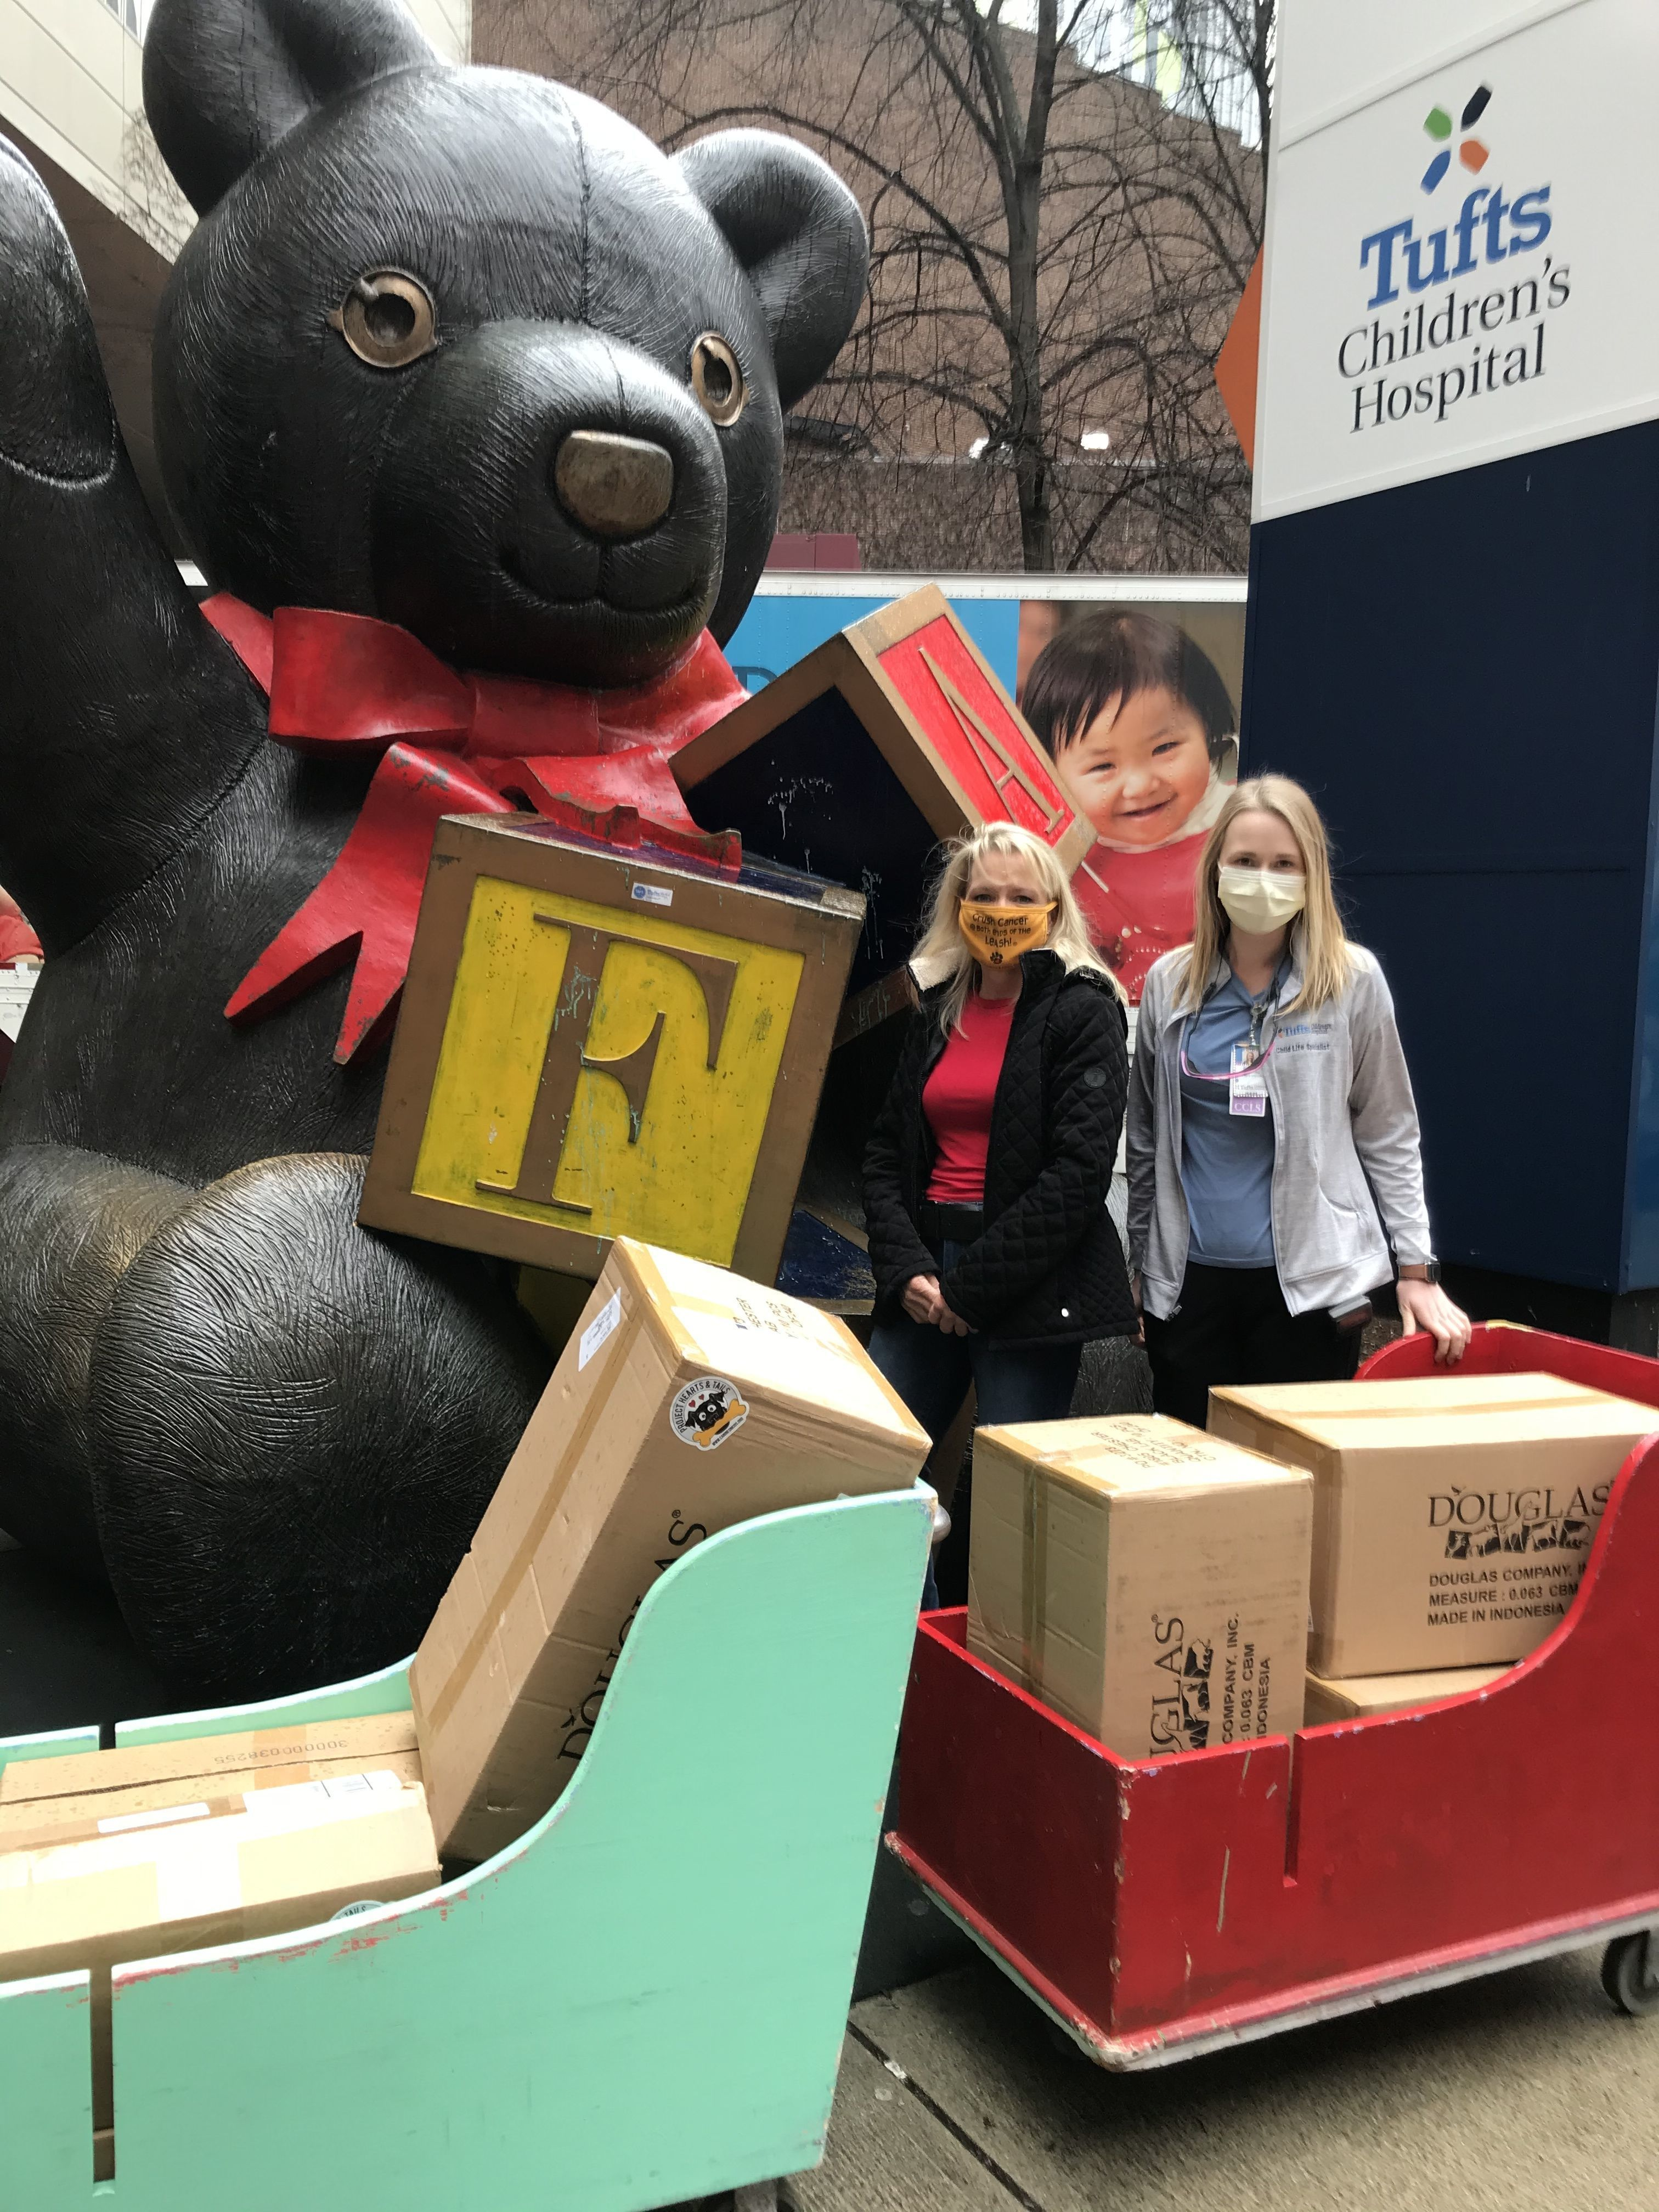 Project Hearts & Tails pups & books arrive at Tufts Children's Jan 2021